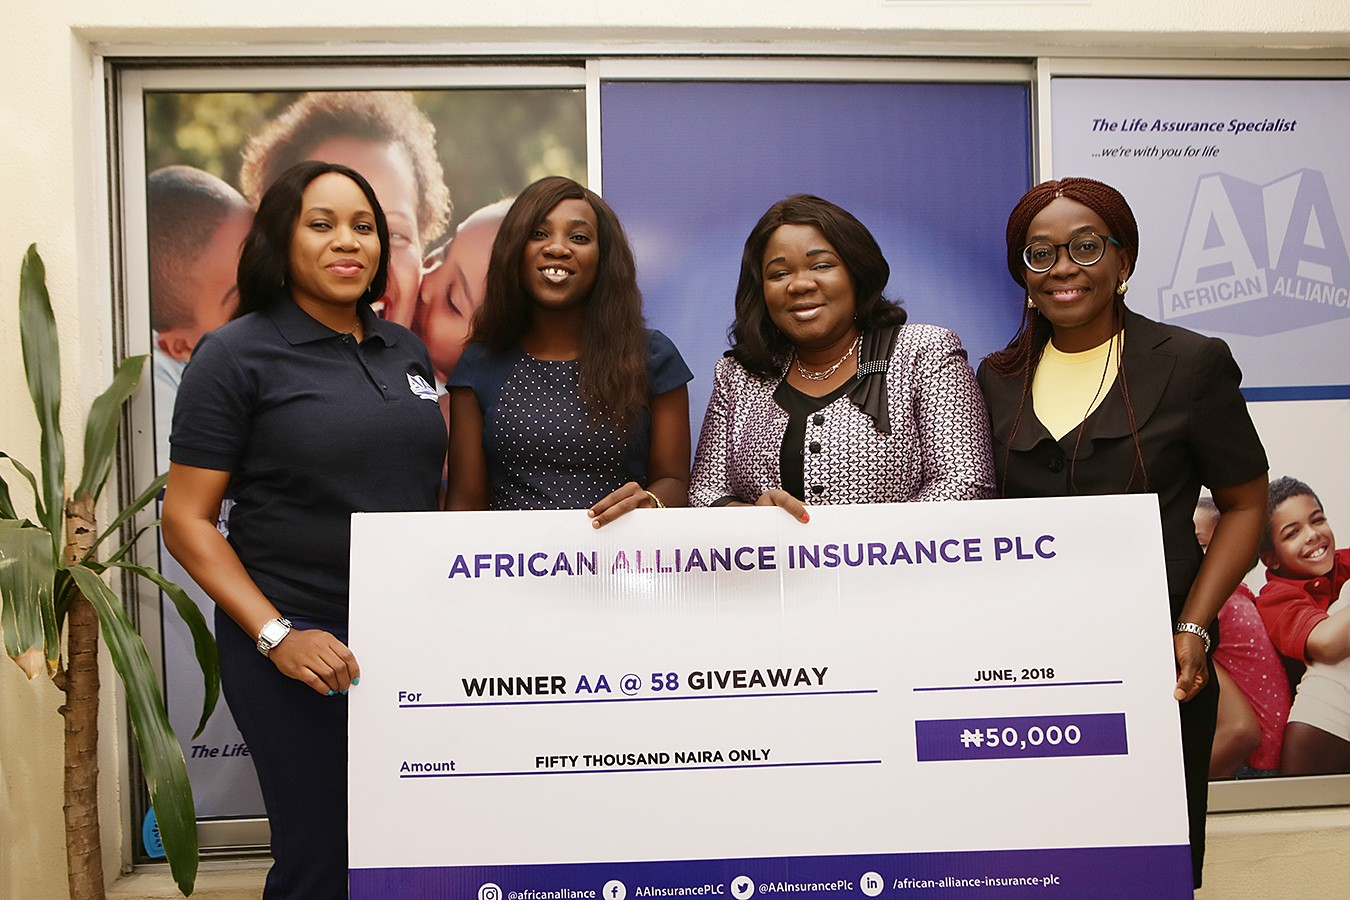 Entrepreneur wins big, as foremost life insurance company, African Alliance Insurance, marks ...